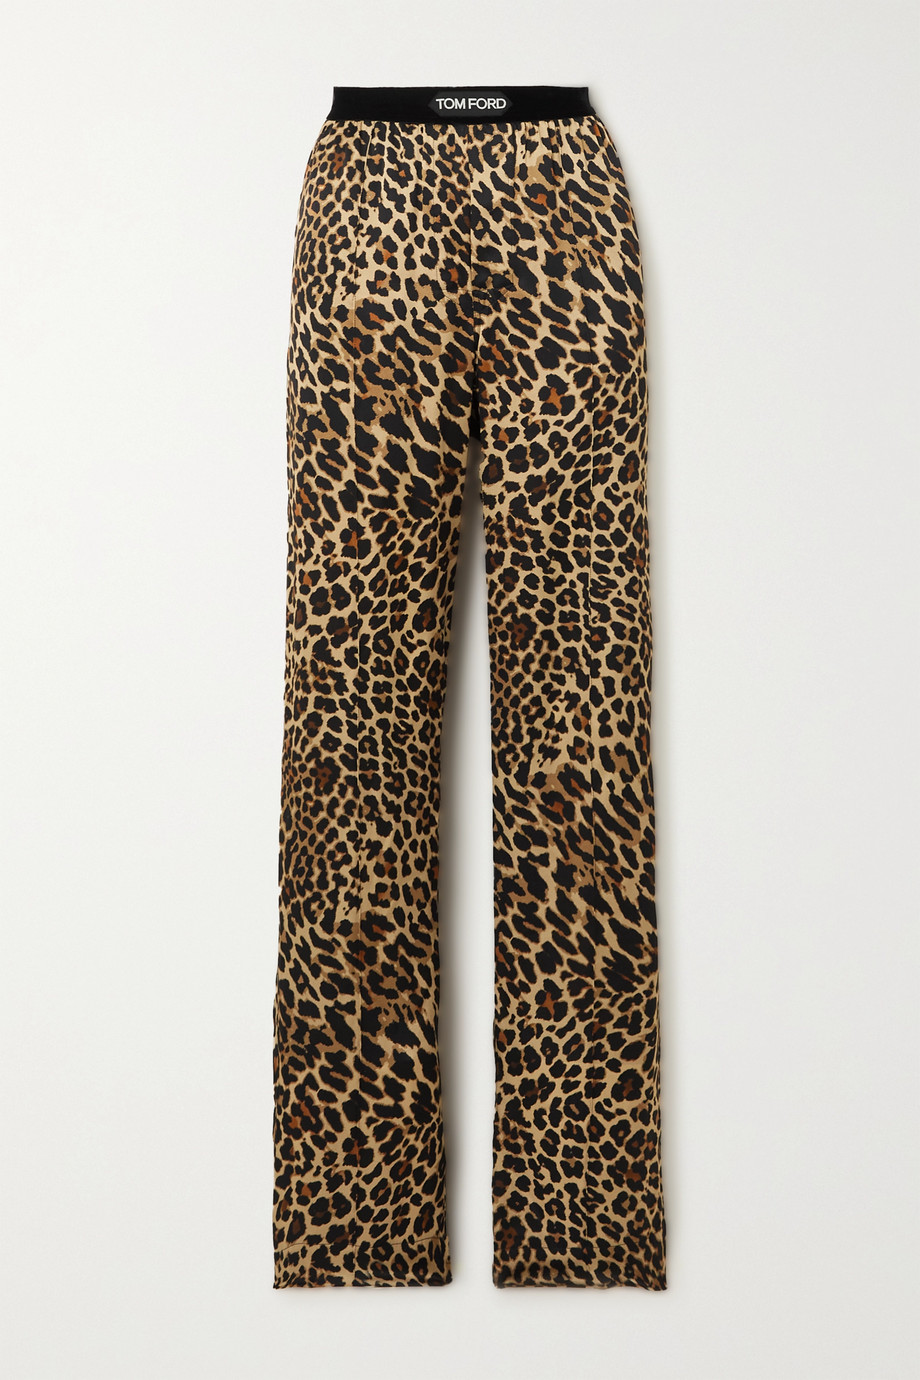 TOM FORD Velvet-trimmed leopard-print stretch-silk satin pants